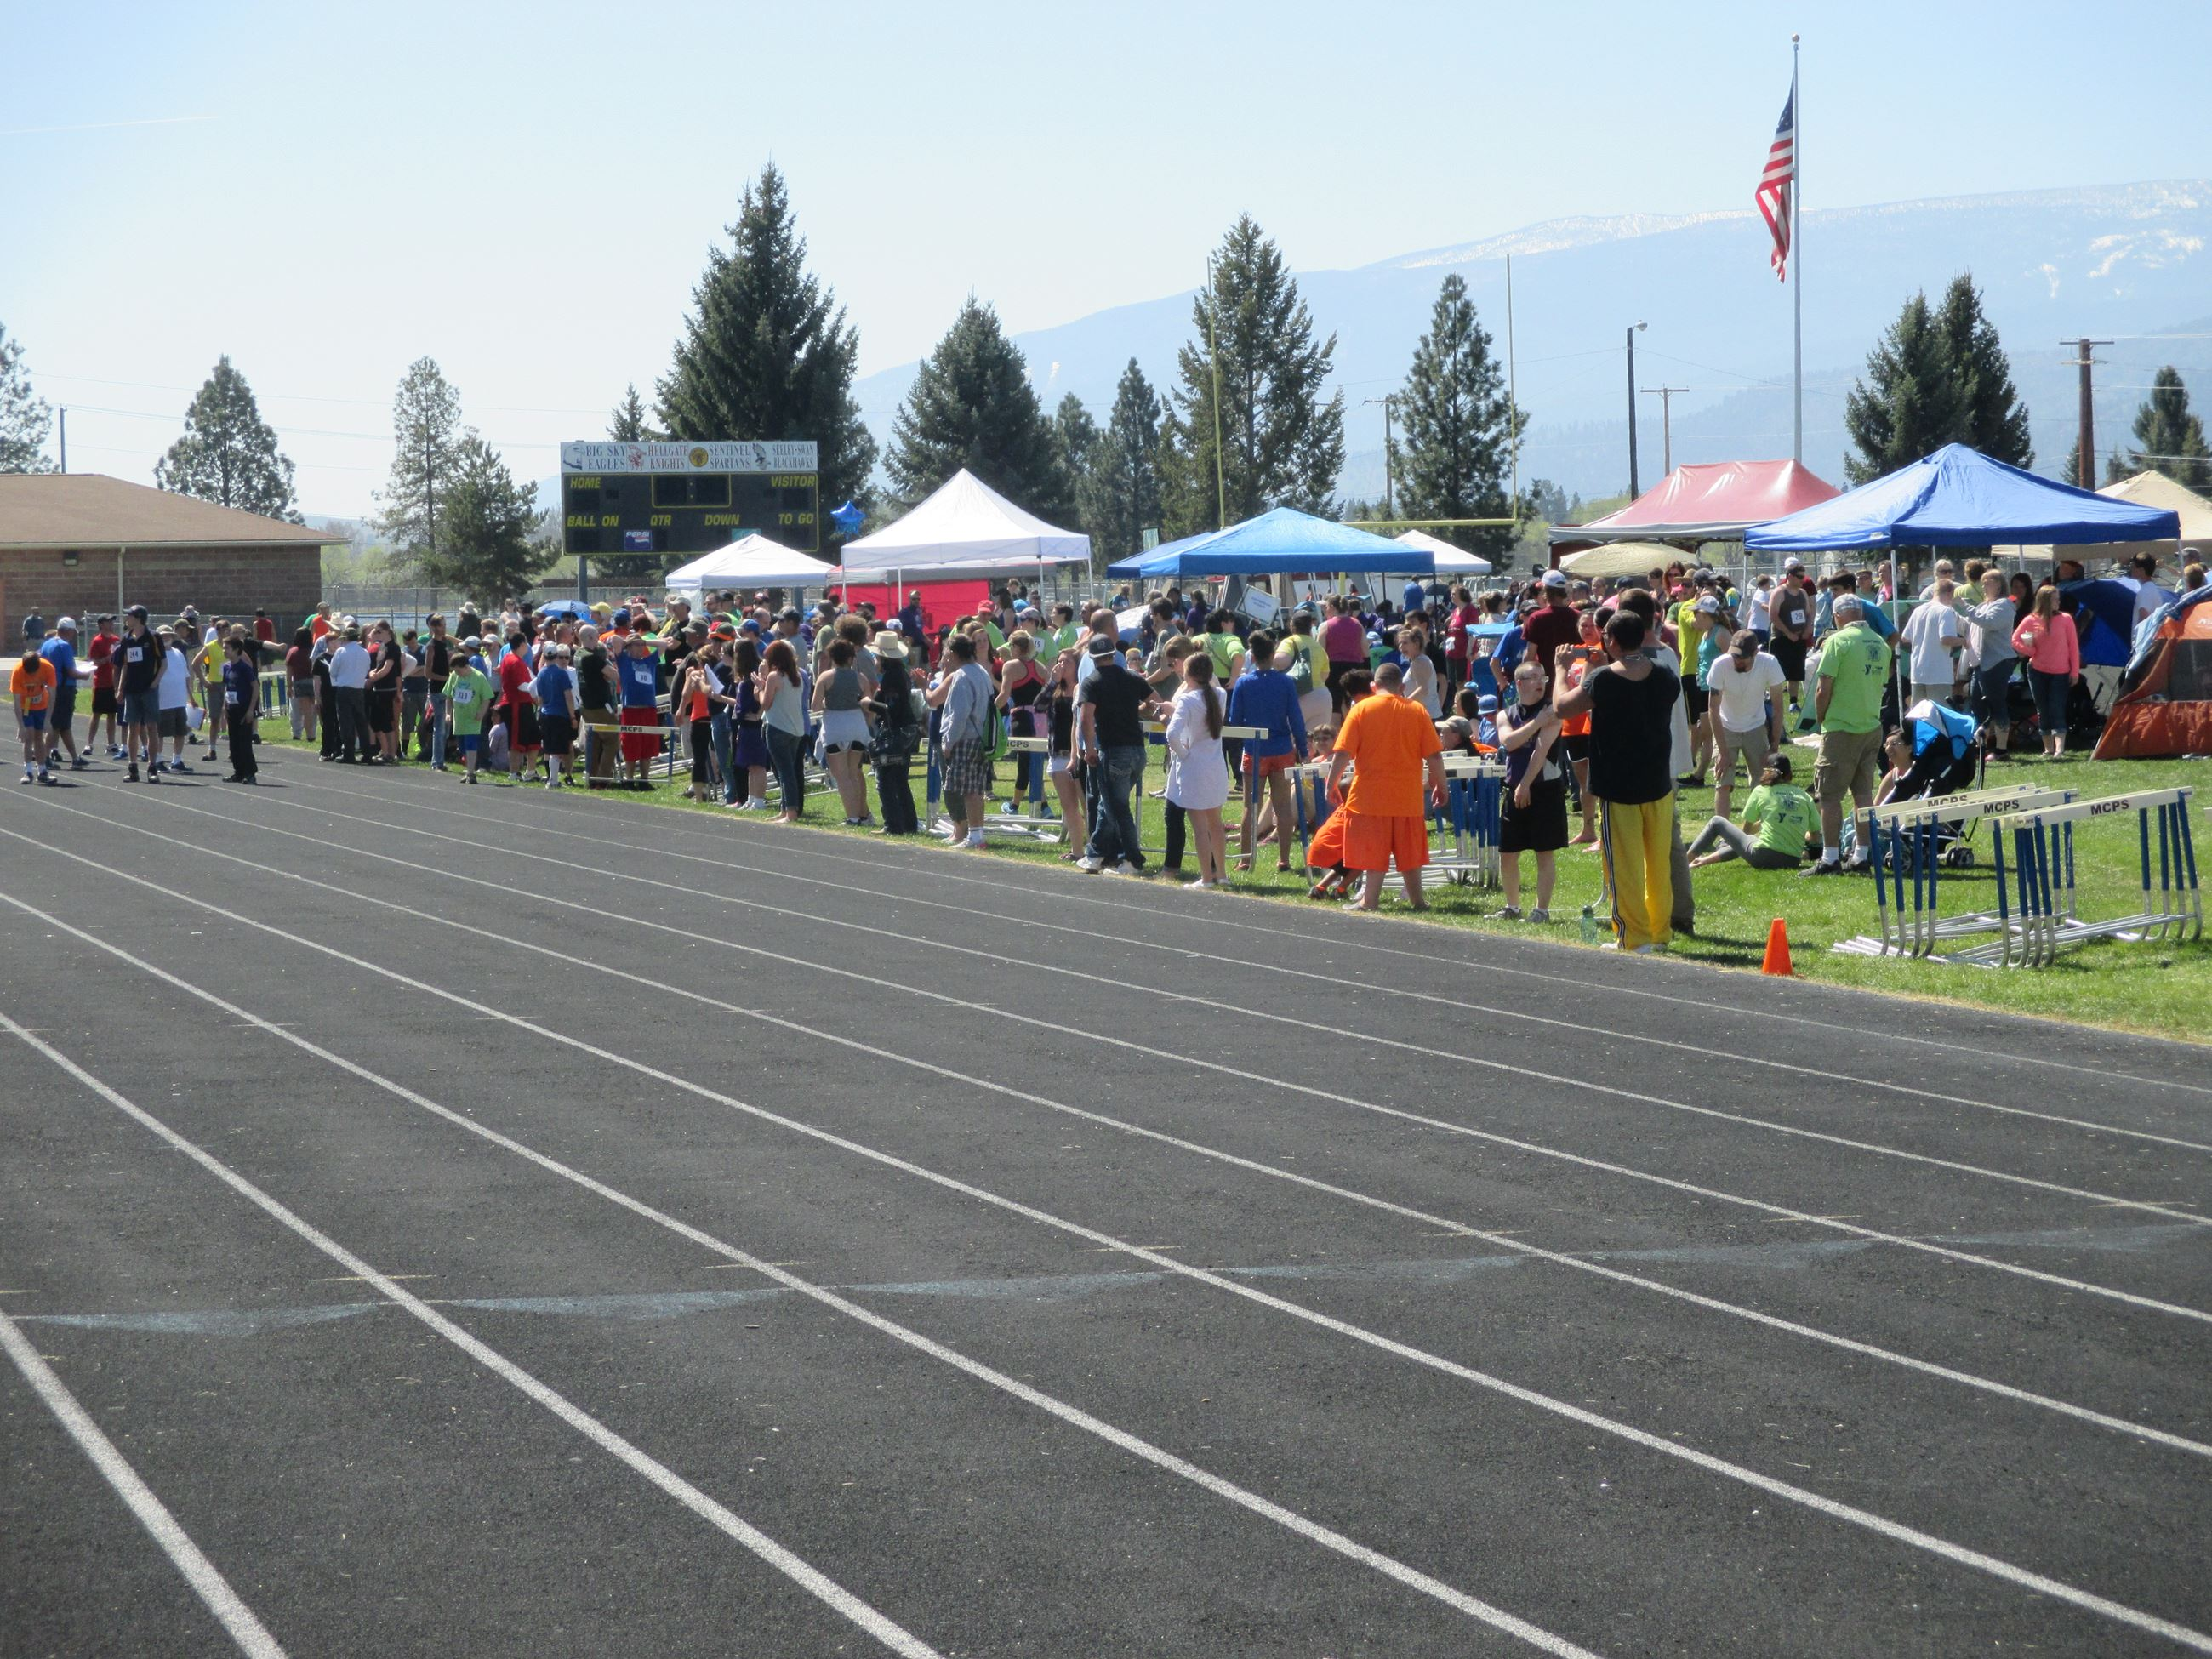 Group Standing Next to the Track